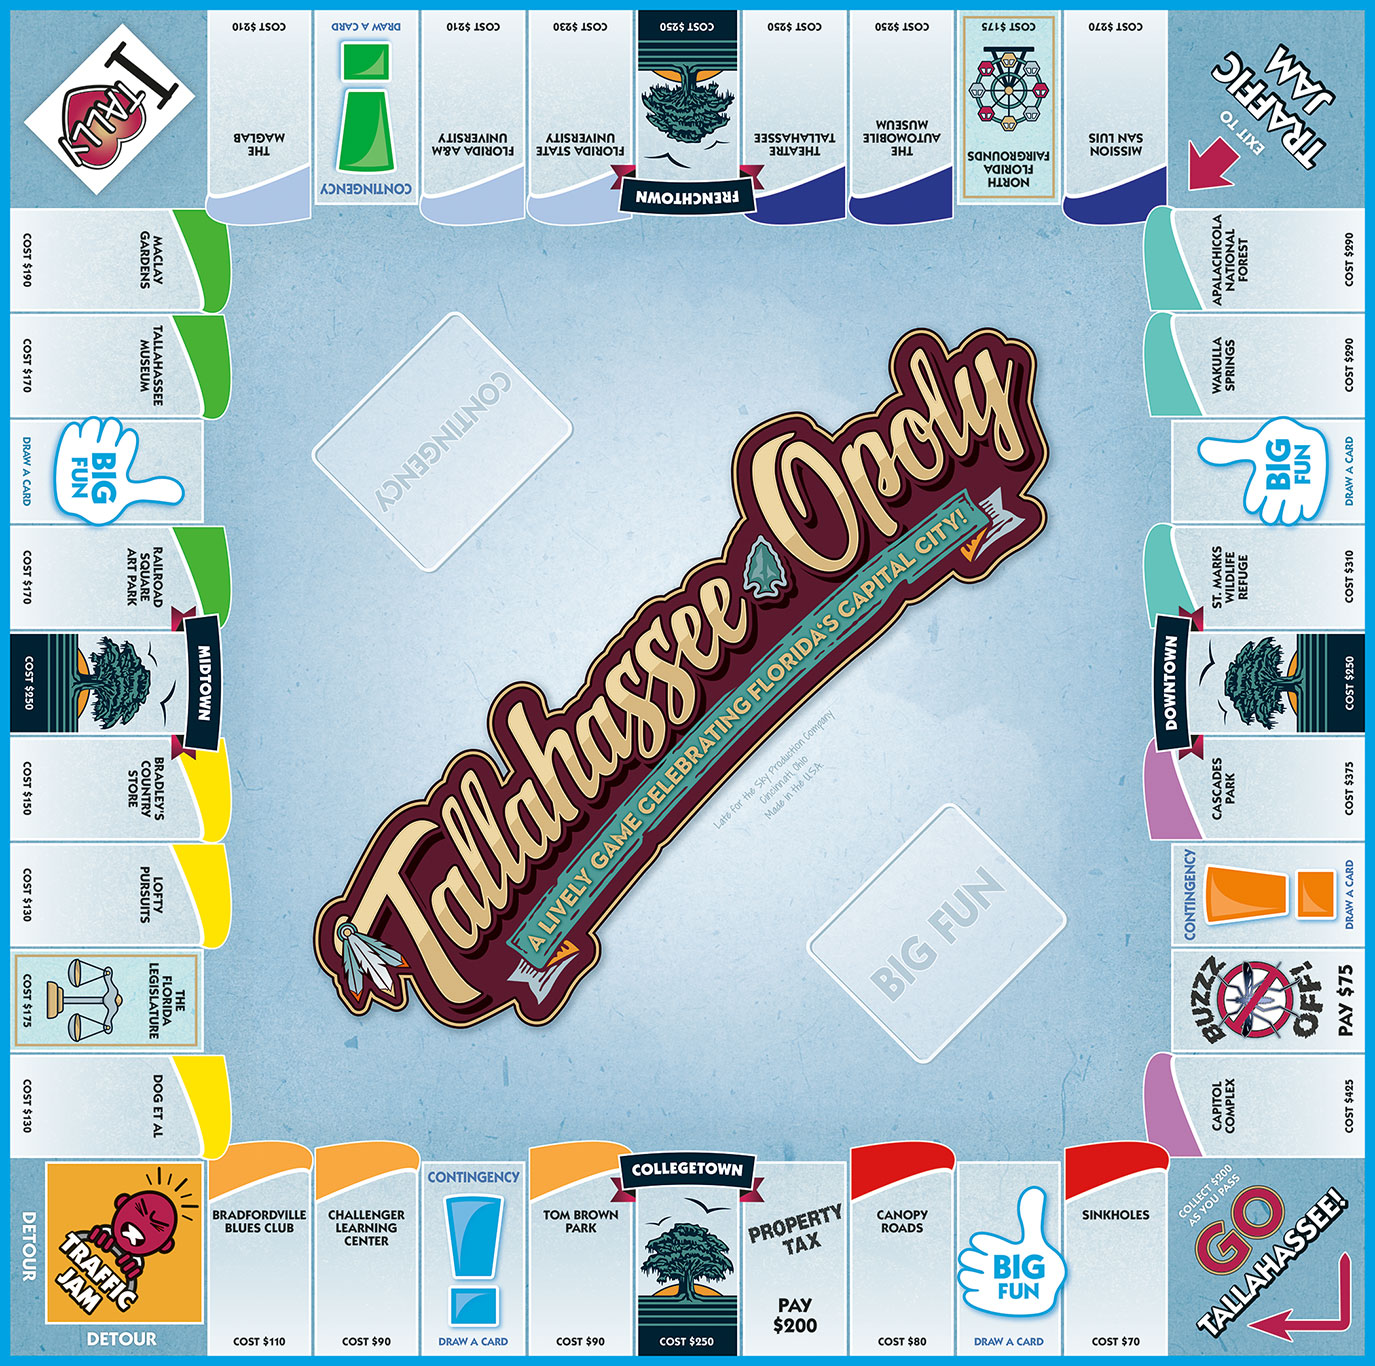 TALLAHASSEE-OPOLY Board Game